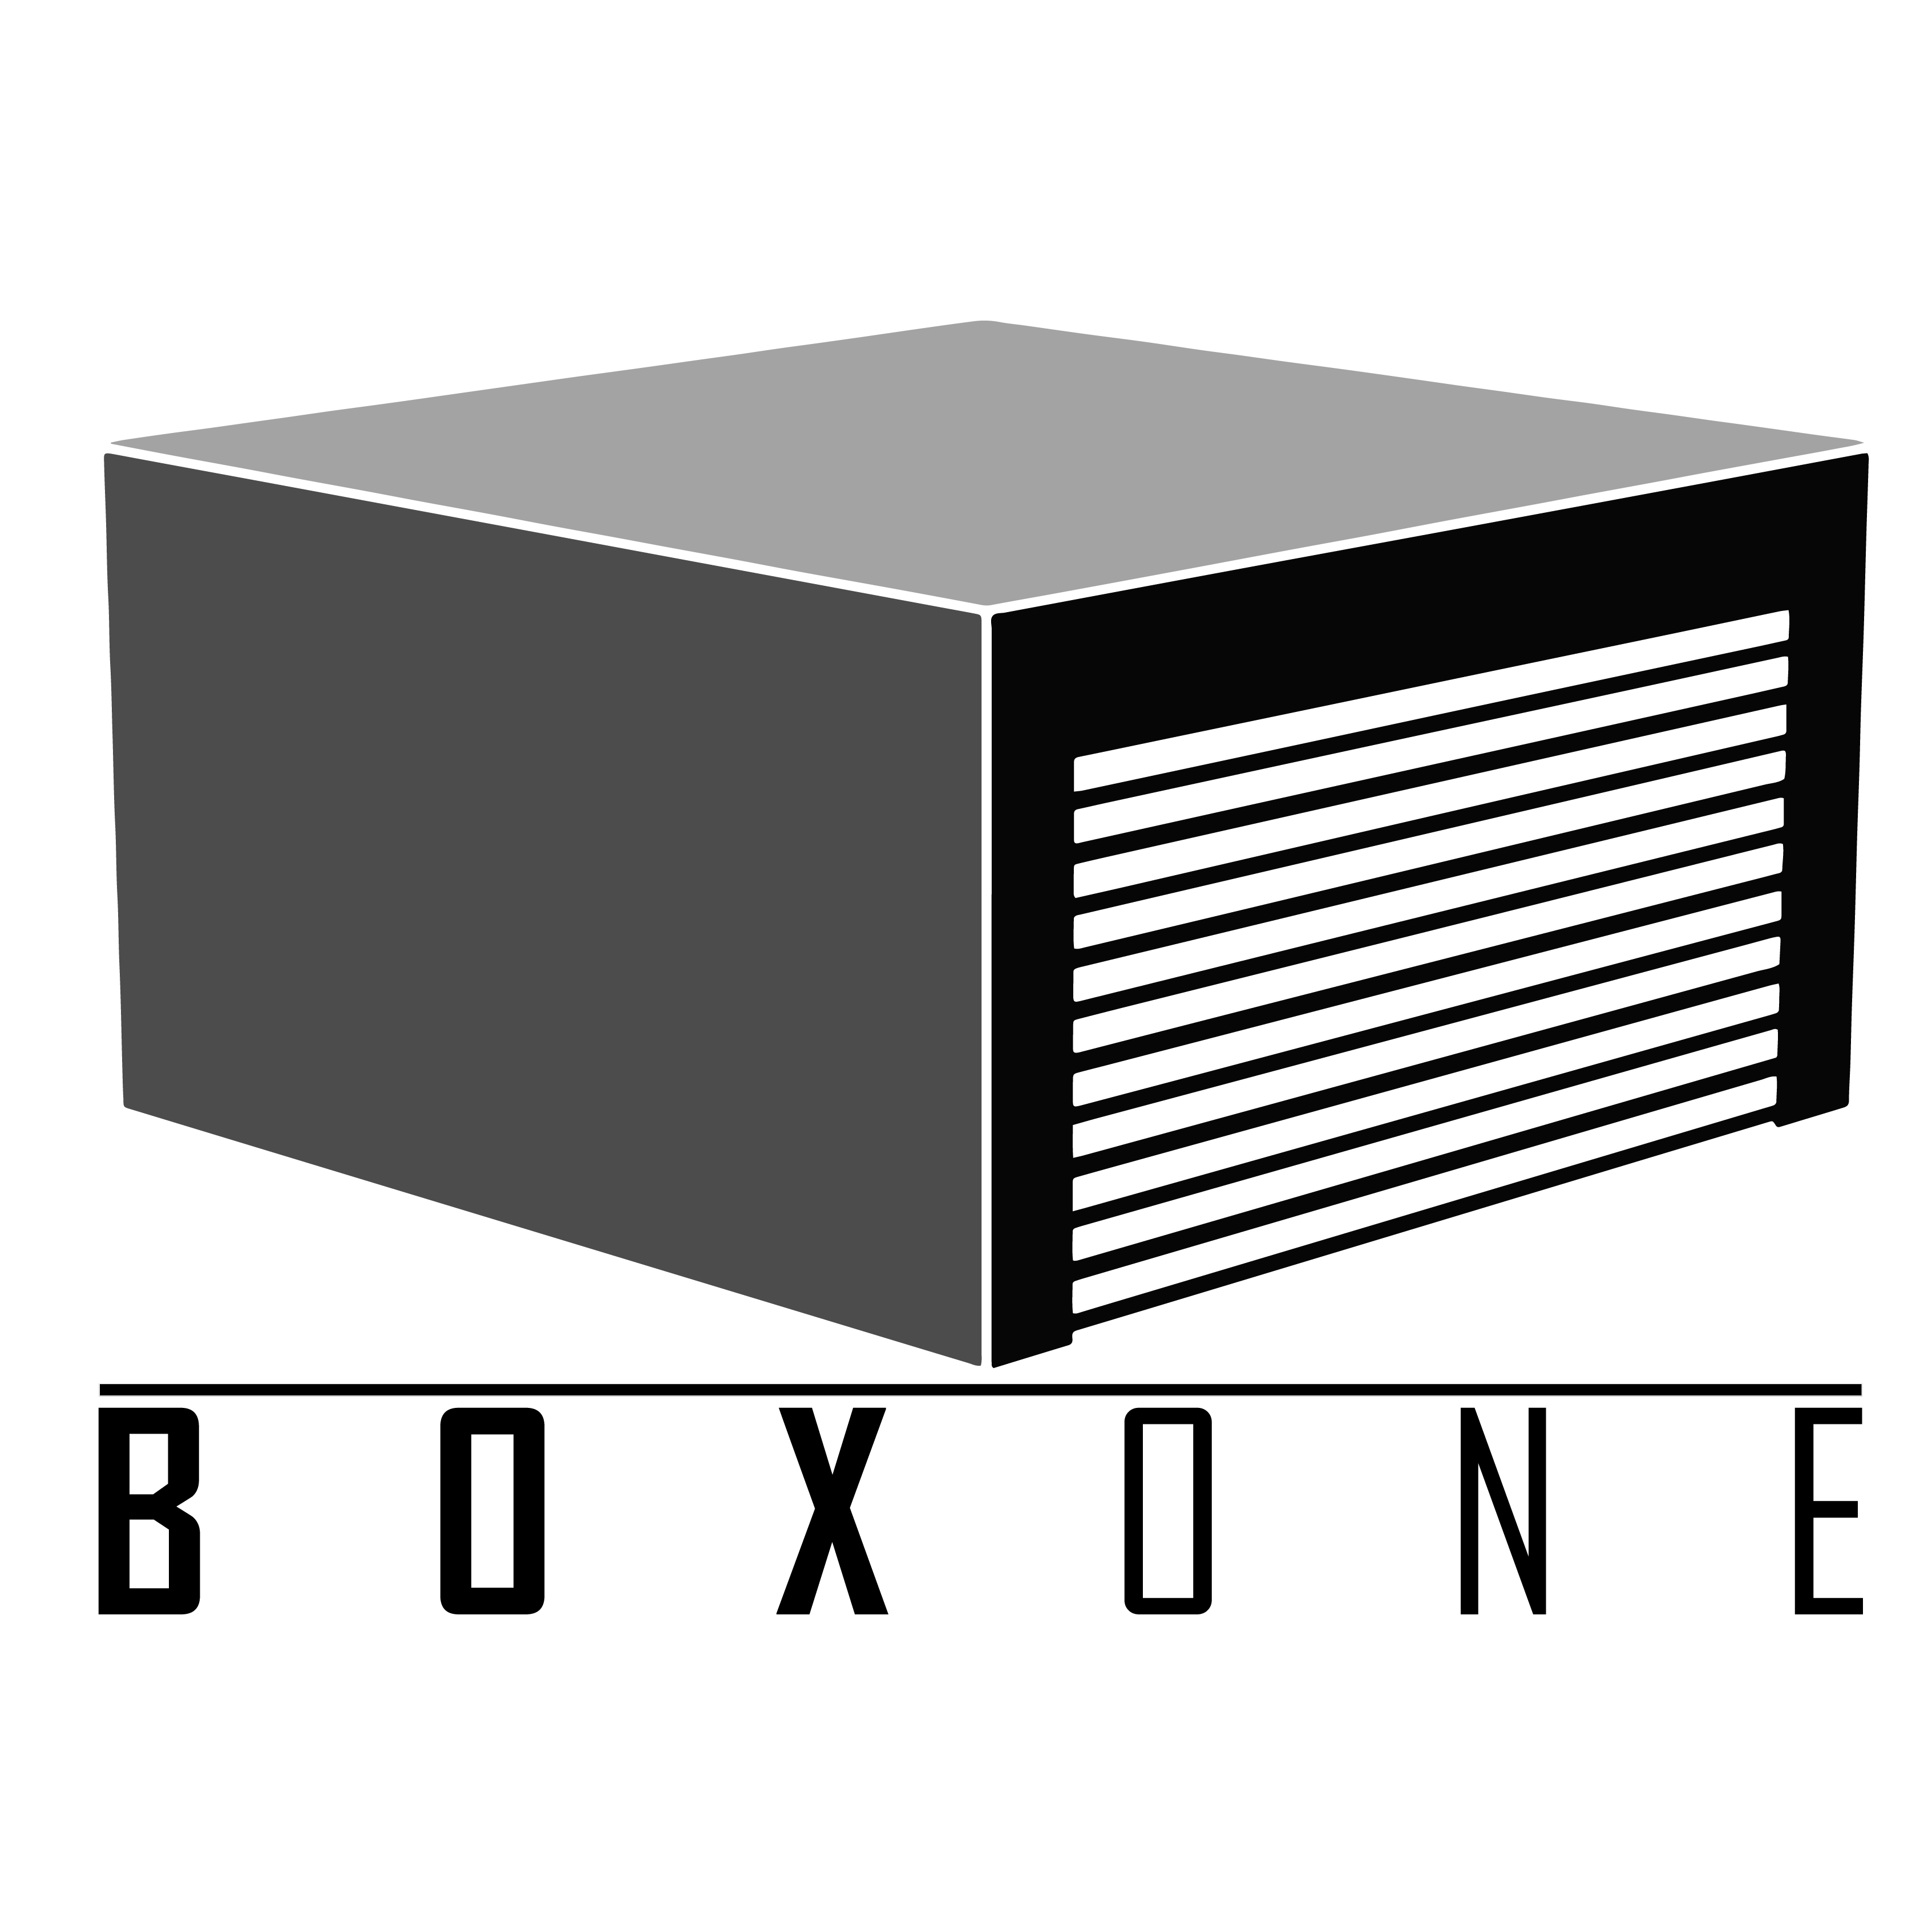 Box One Design